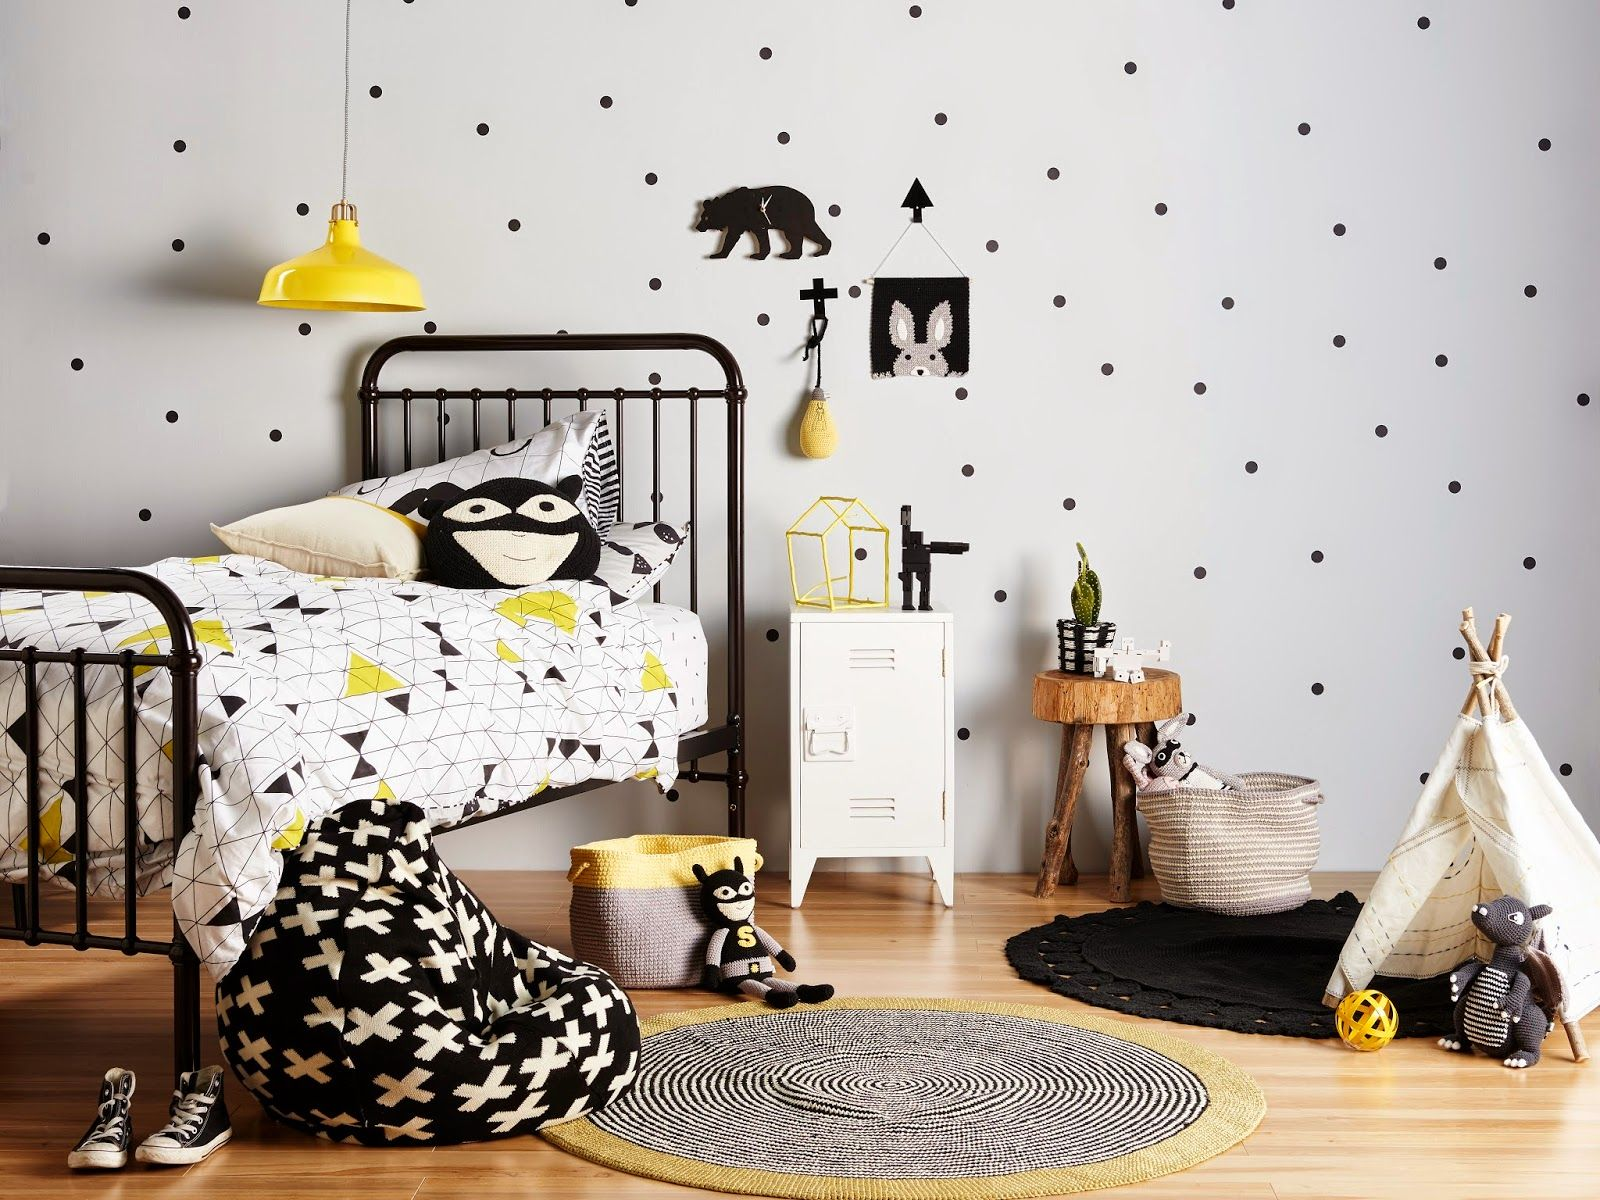 inspirations une chambre d enfant en noir et blanc kids pinterest enfants noirs. Black Bedroom Furniture Sets. Home Design Ideas